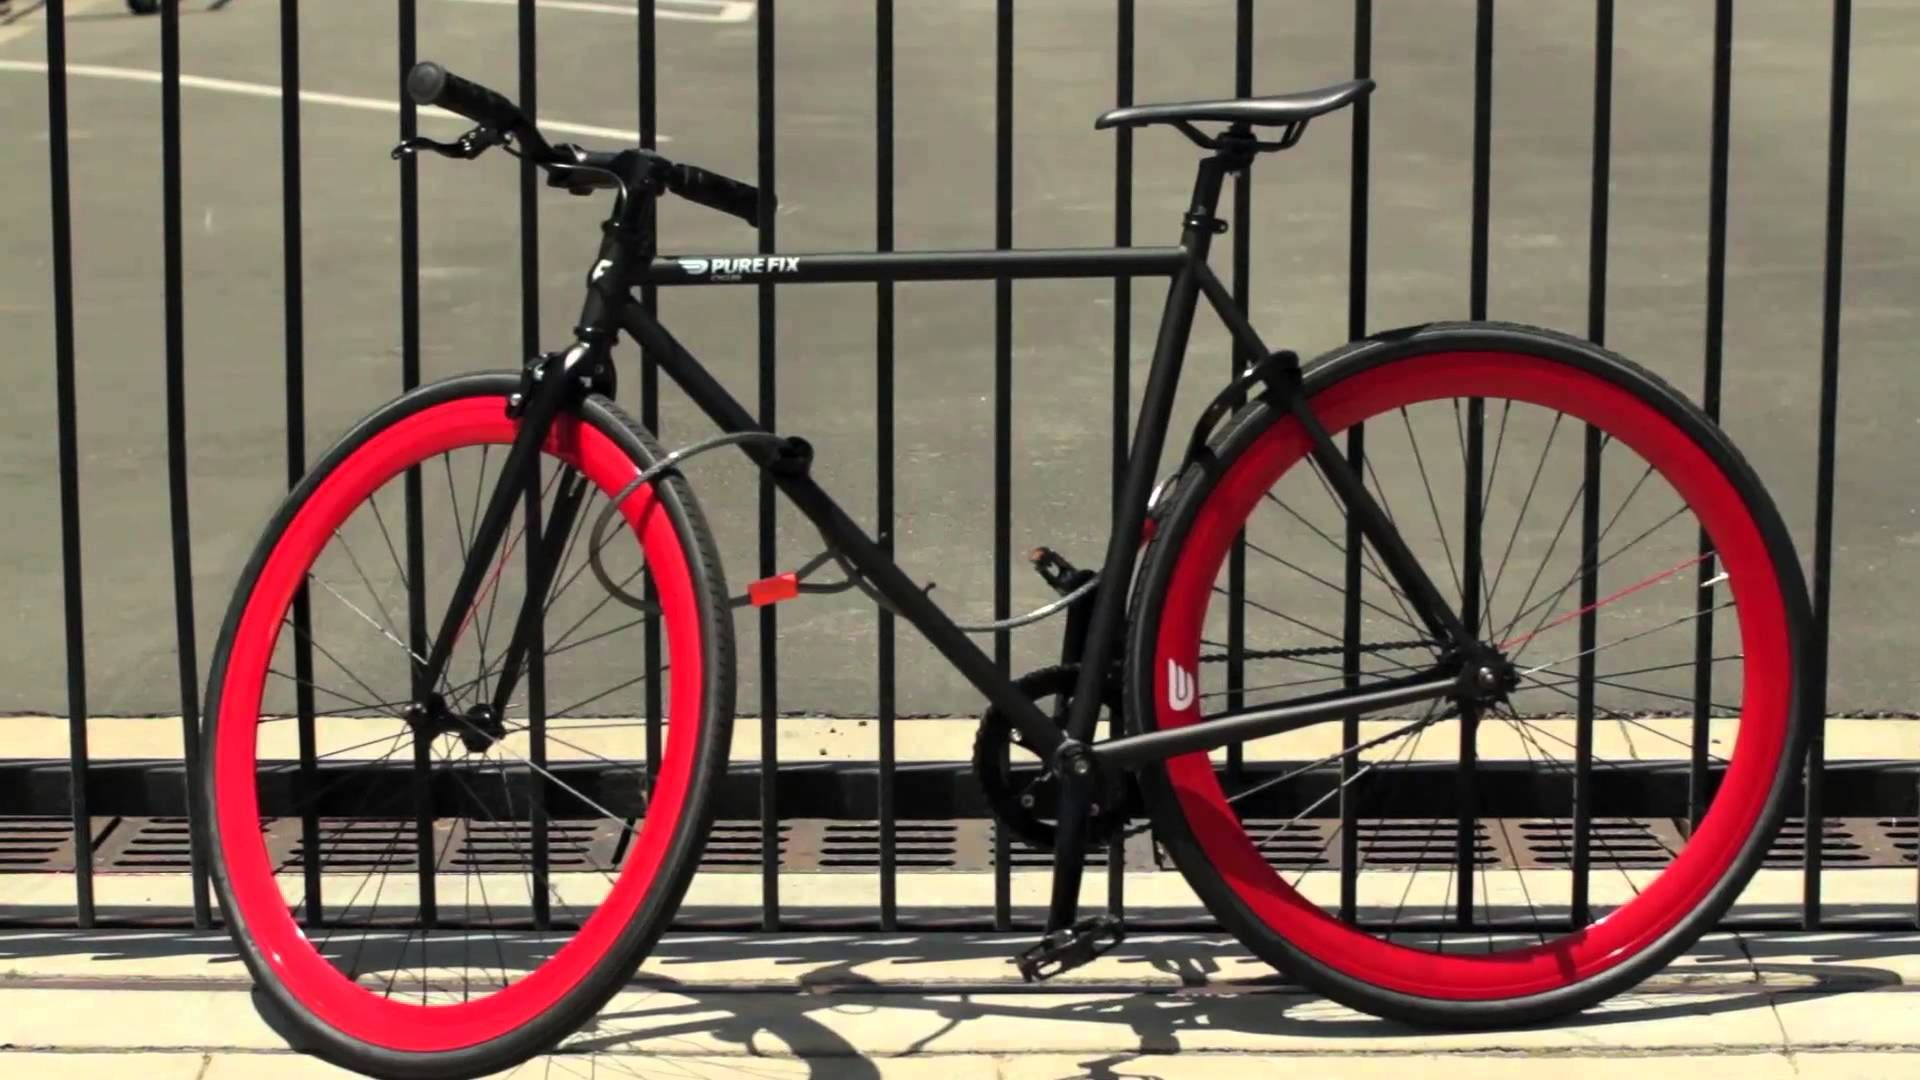 The Best Bike Lock If You Value Your Bike And Want It Stay Safe